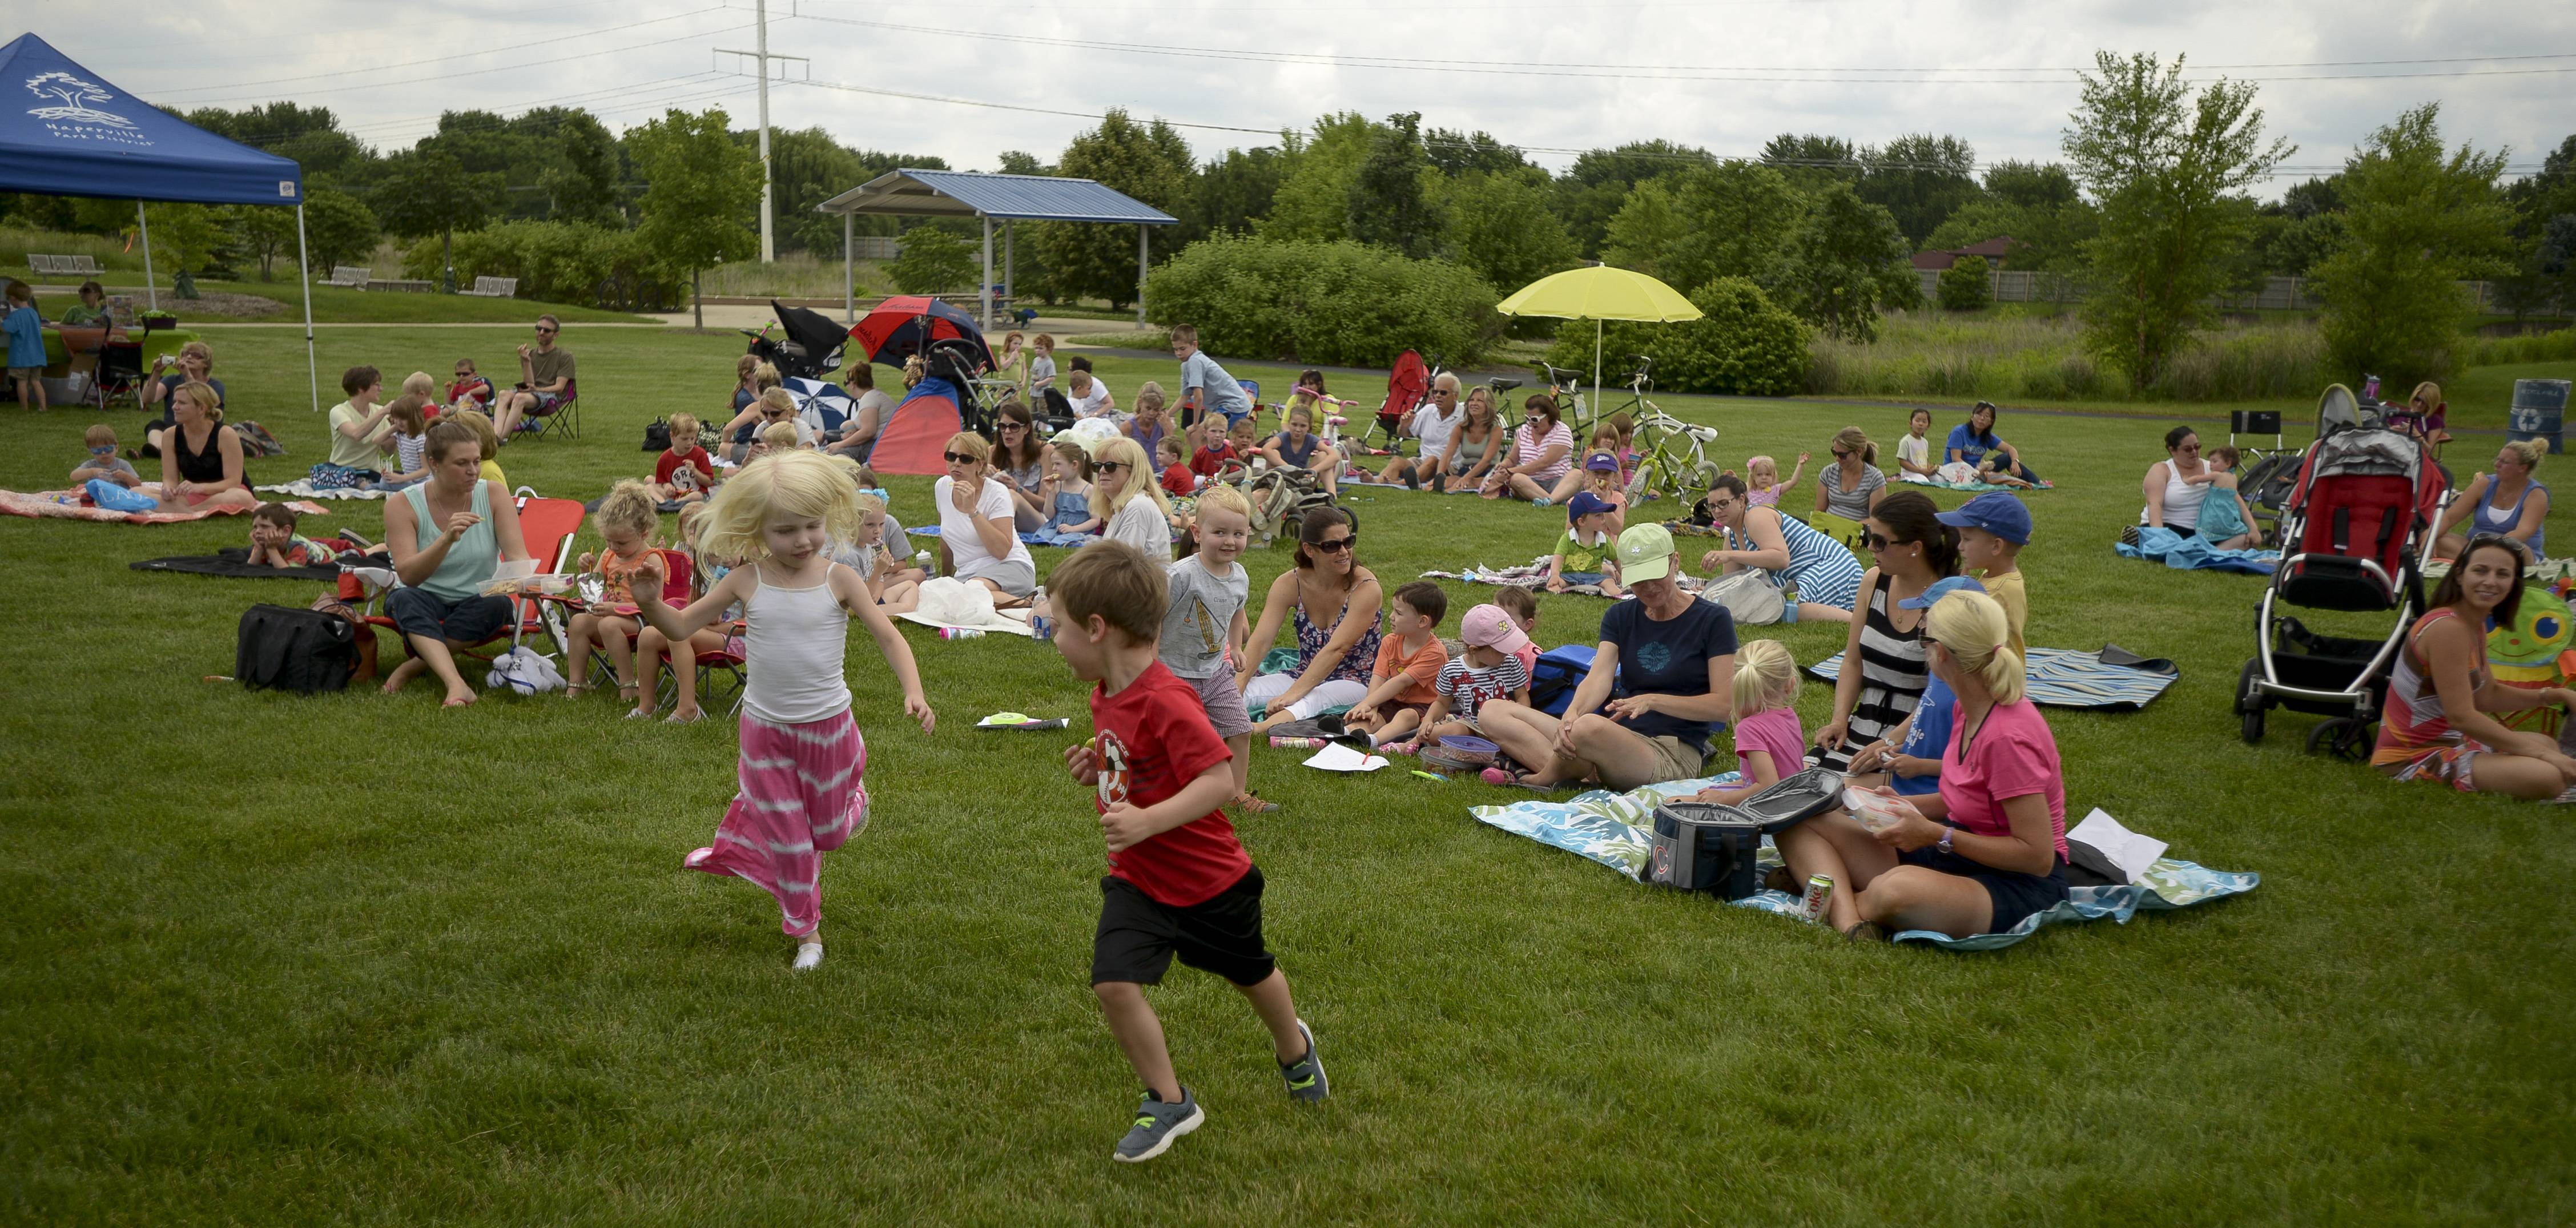 Fans could dance, sing or just eat lunch while watching the Ice Cream Vendors perform Tuesday at Naperville's Frontier Park.